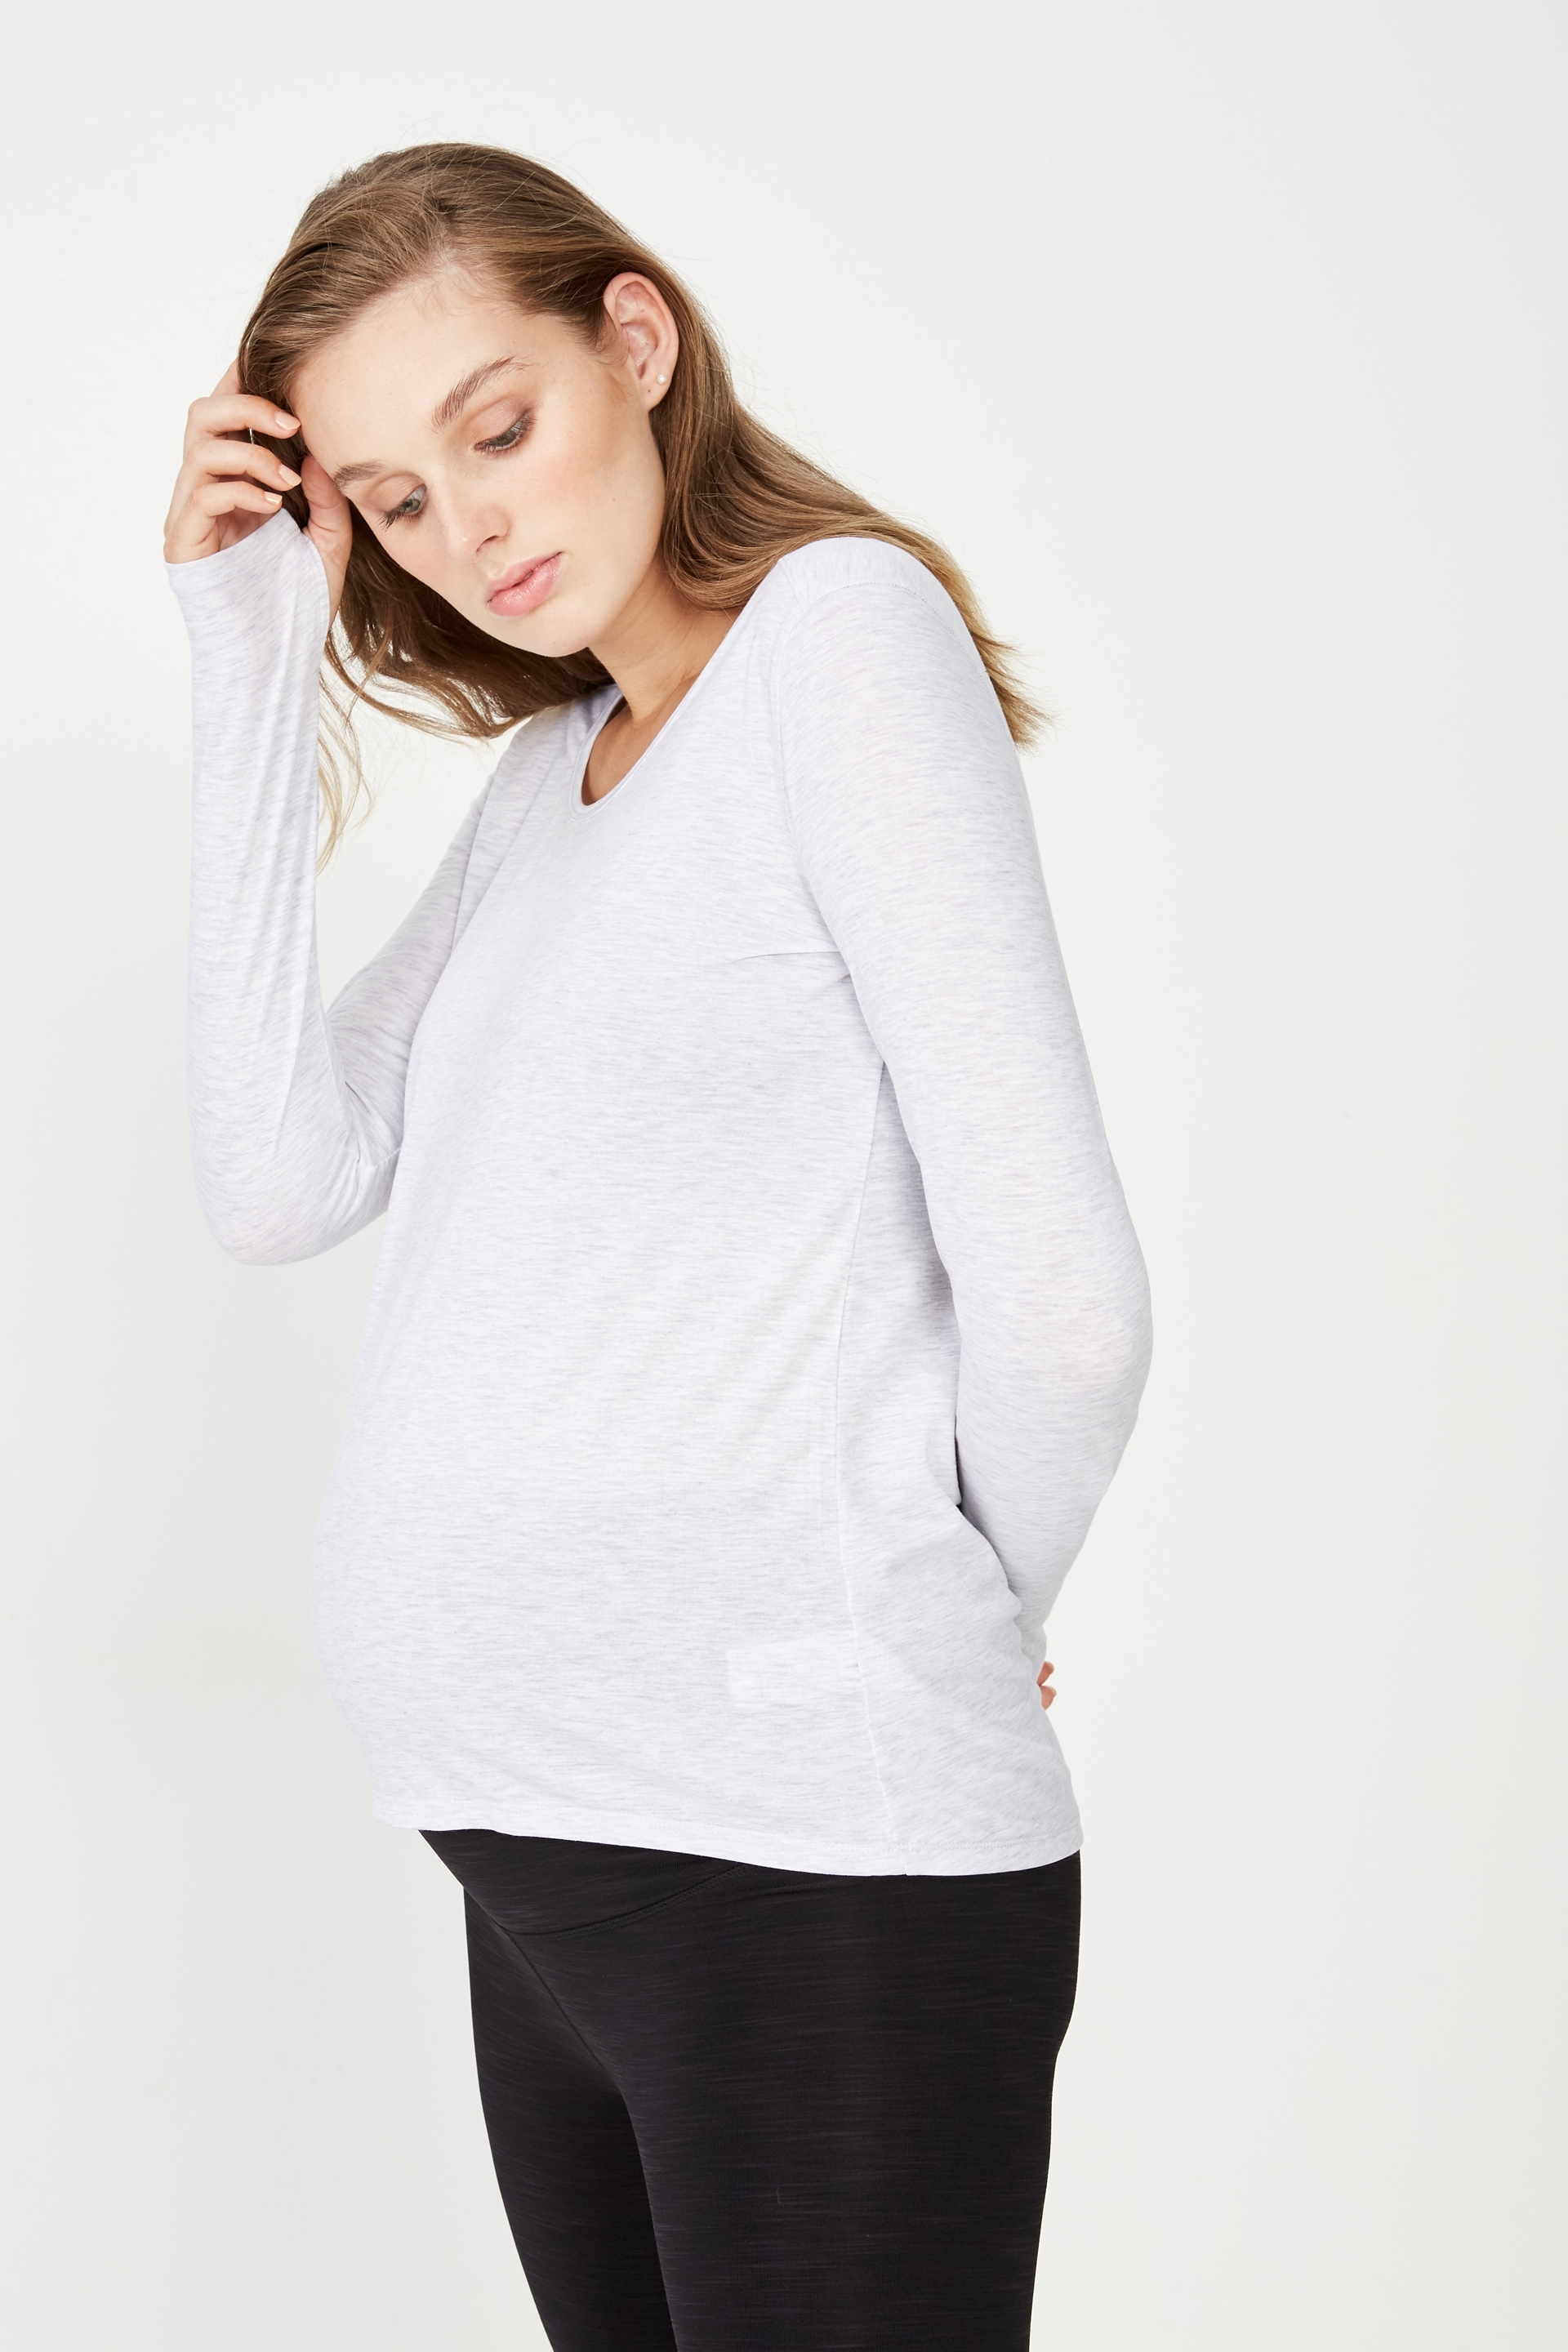 Body - Maternity Long Sleeve Sports Top - Grey marle 9352403366926